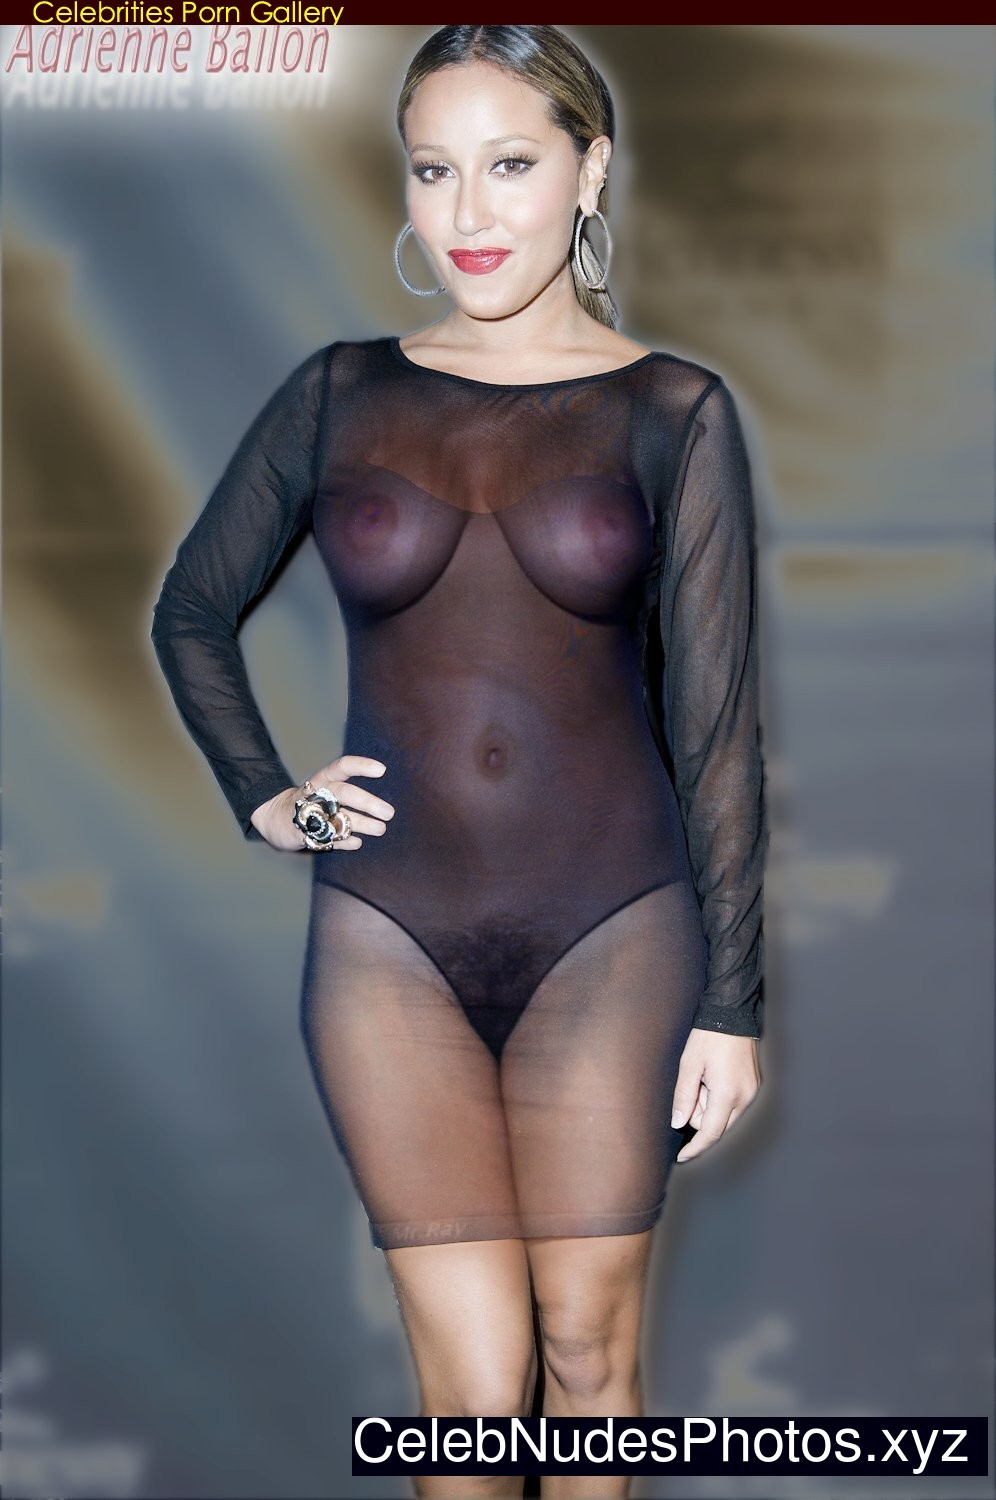 adrienne bailon semi nude photos